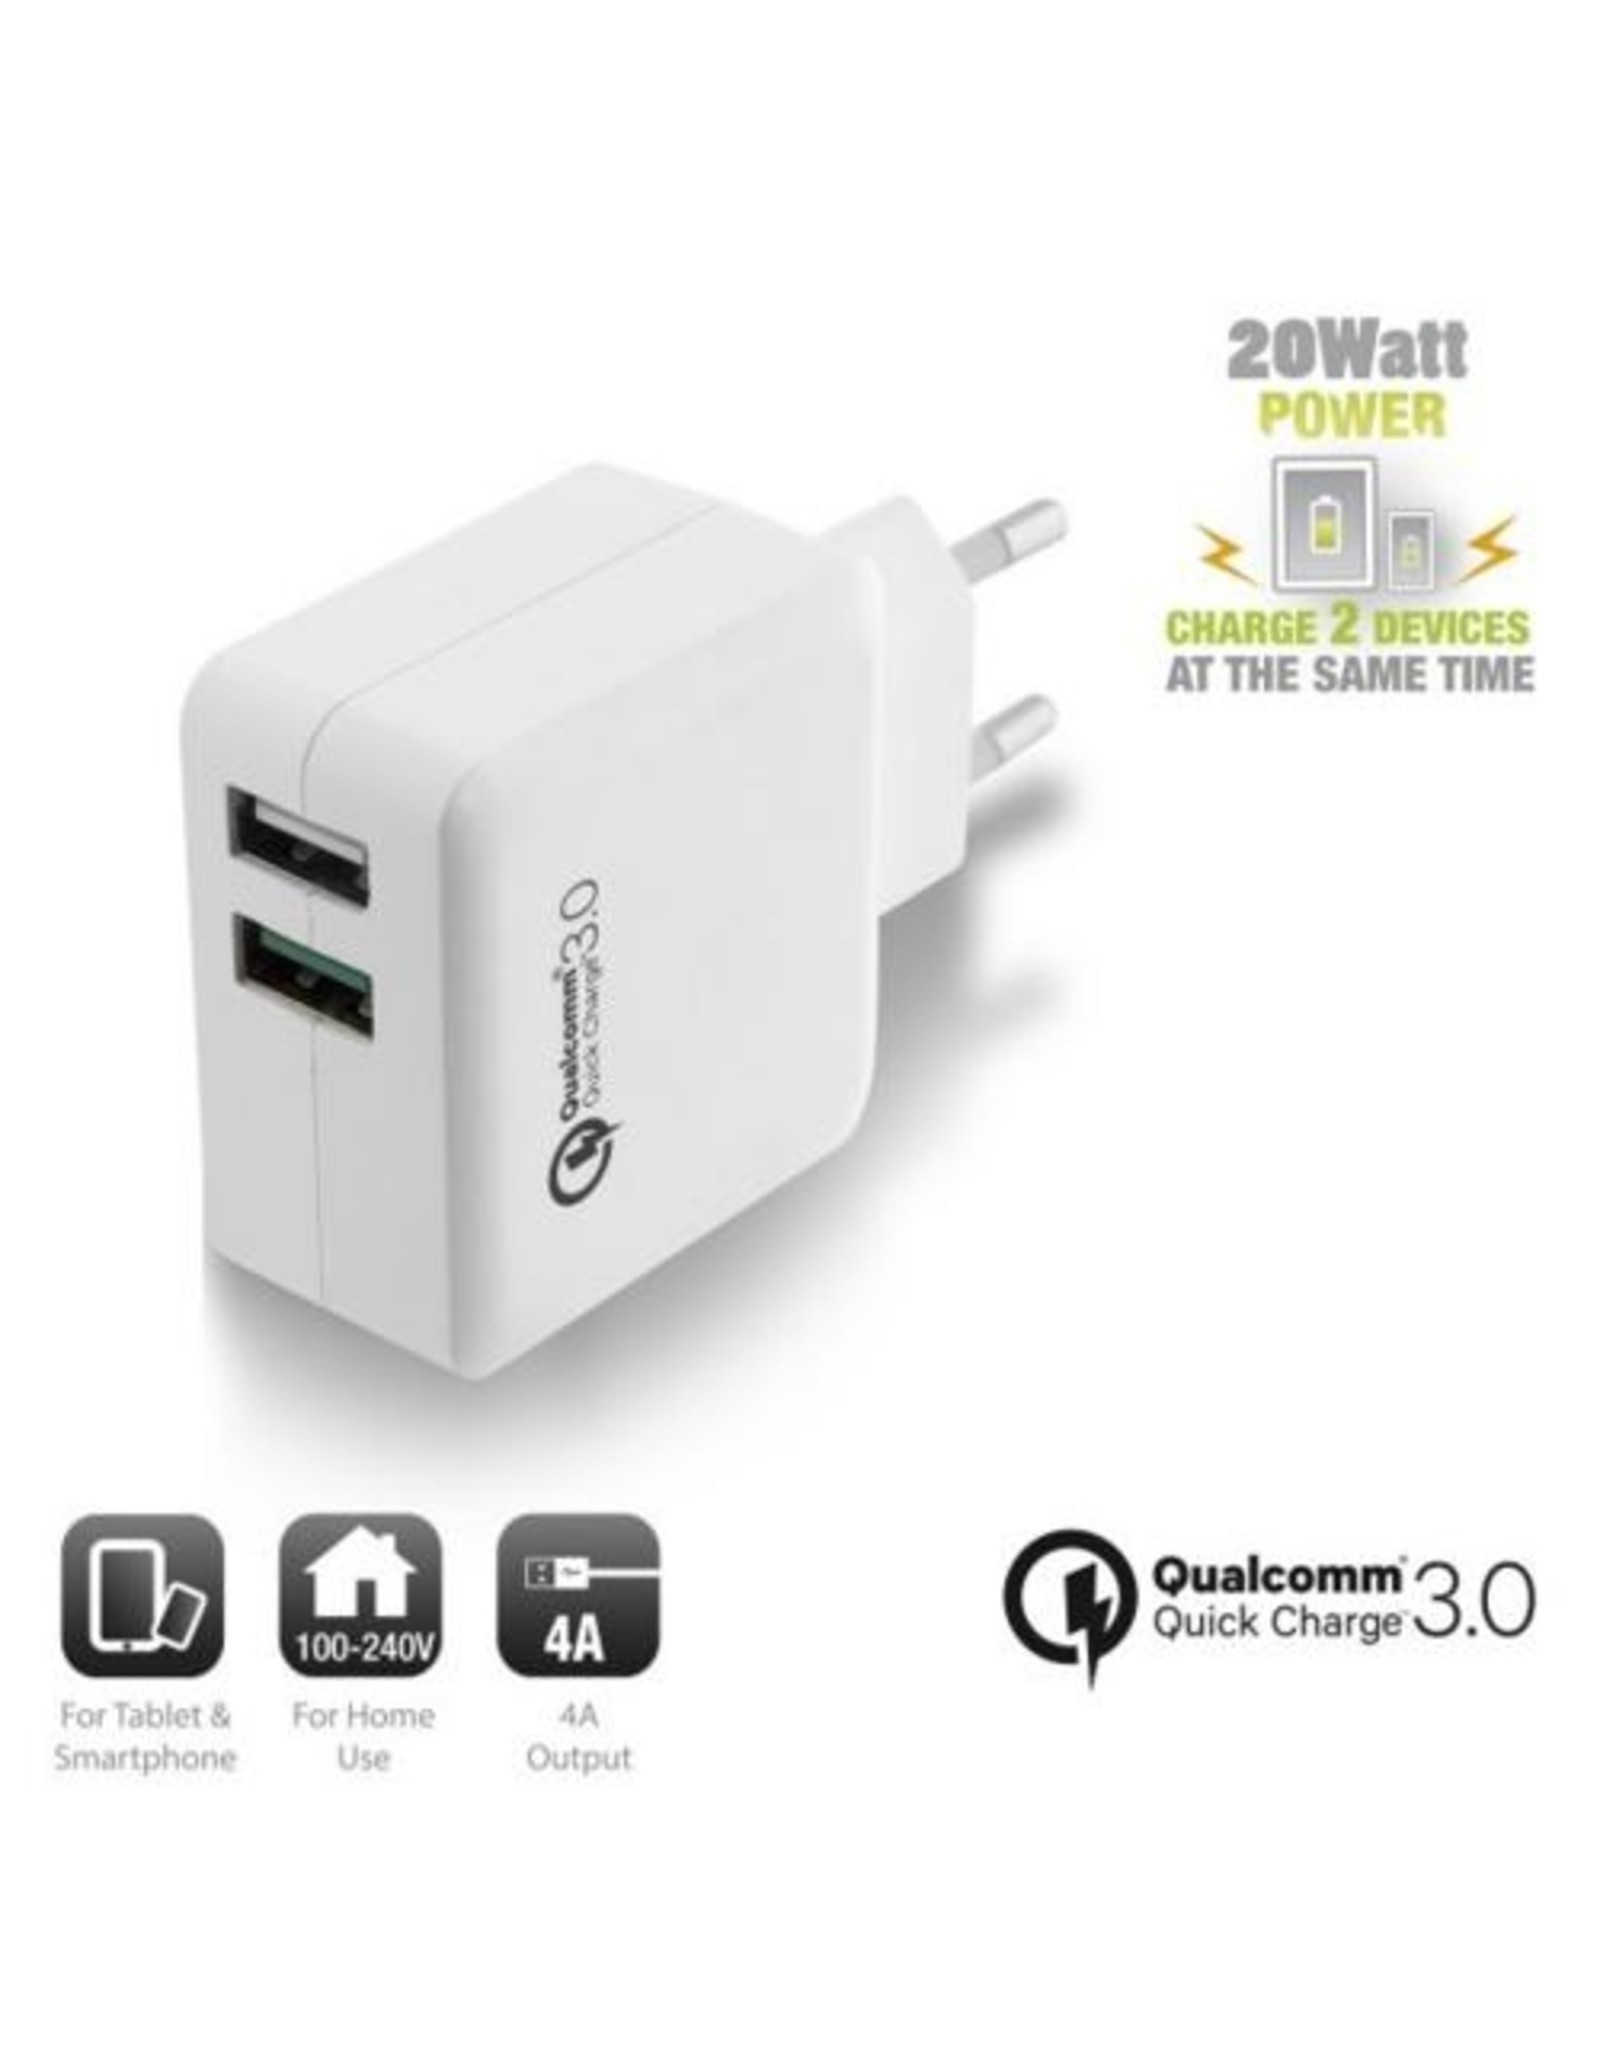 Ewent USB Charger 110-240V 2 port  & Quickcharge Qualcomm 4A